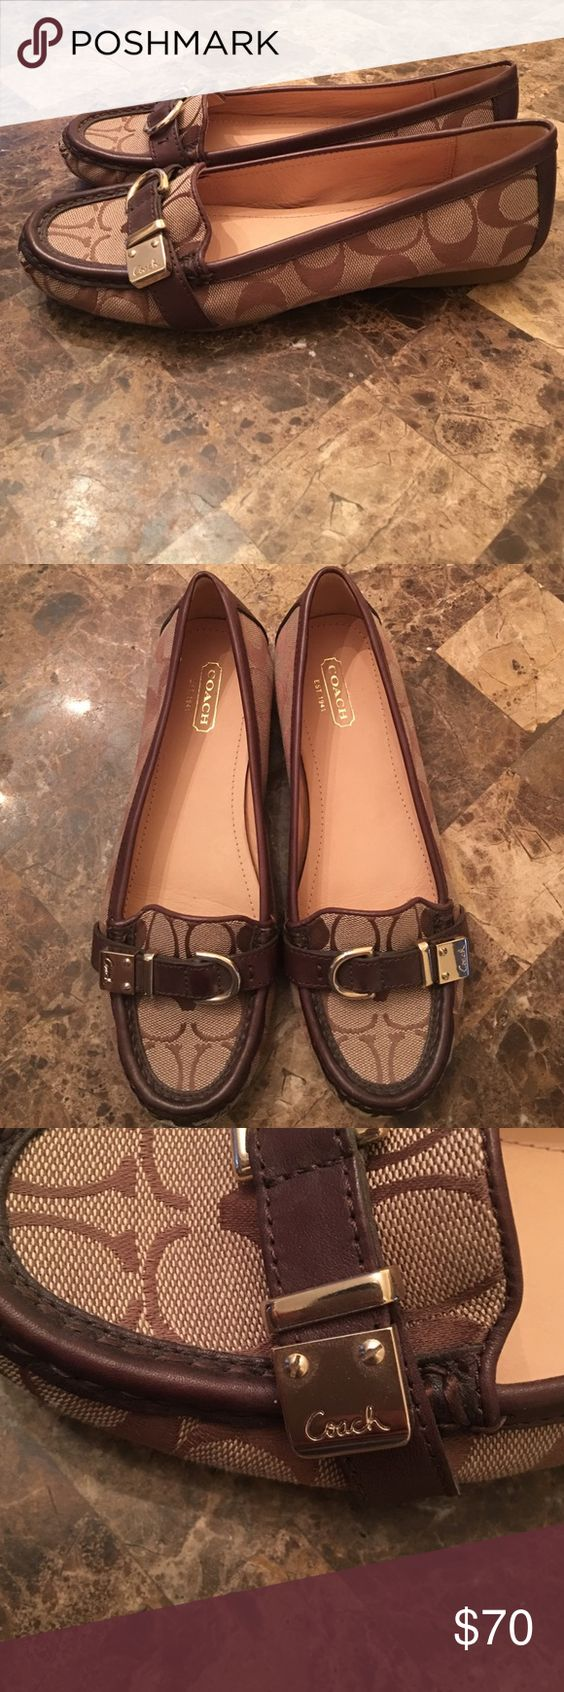 Coach loafers Size 7. Never worn. Brown and tan loafers Coach Shoes Flats & Loafers